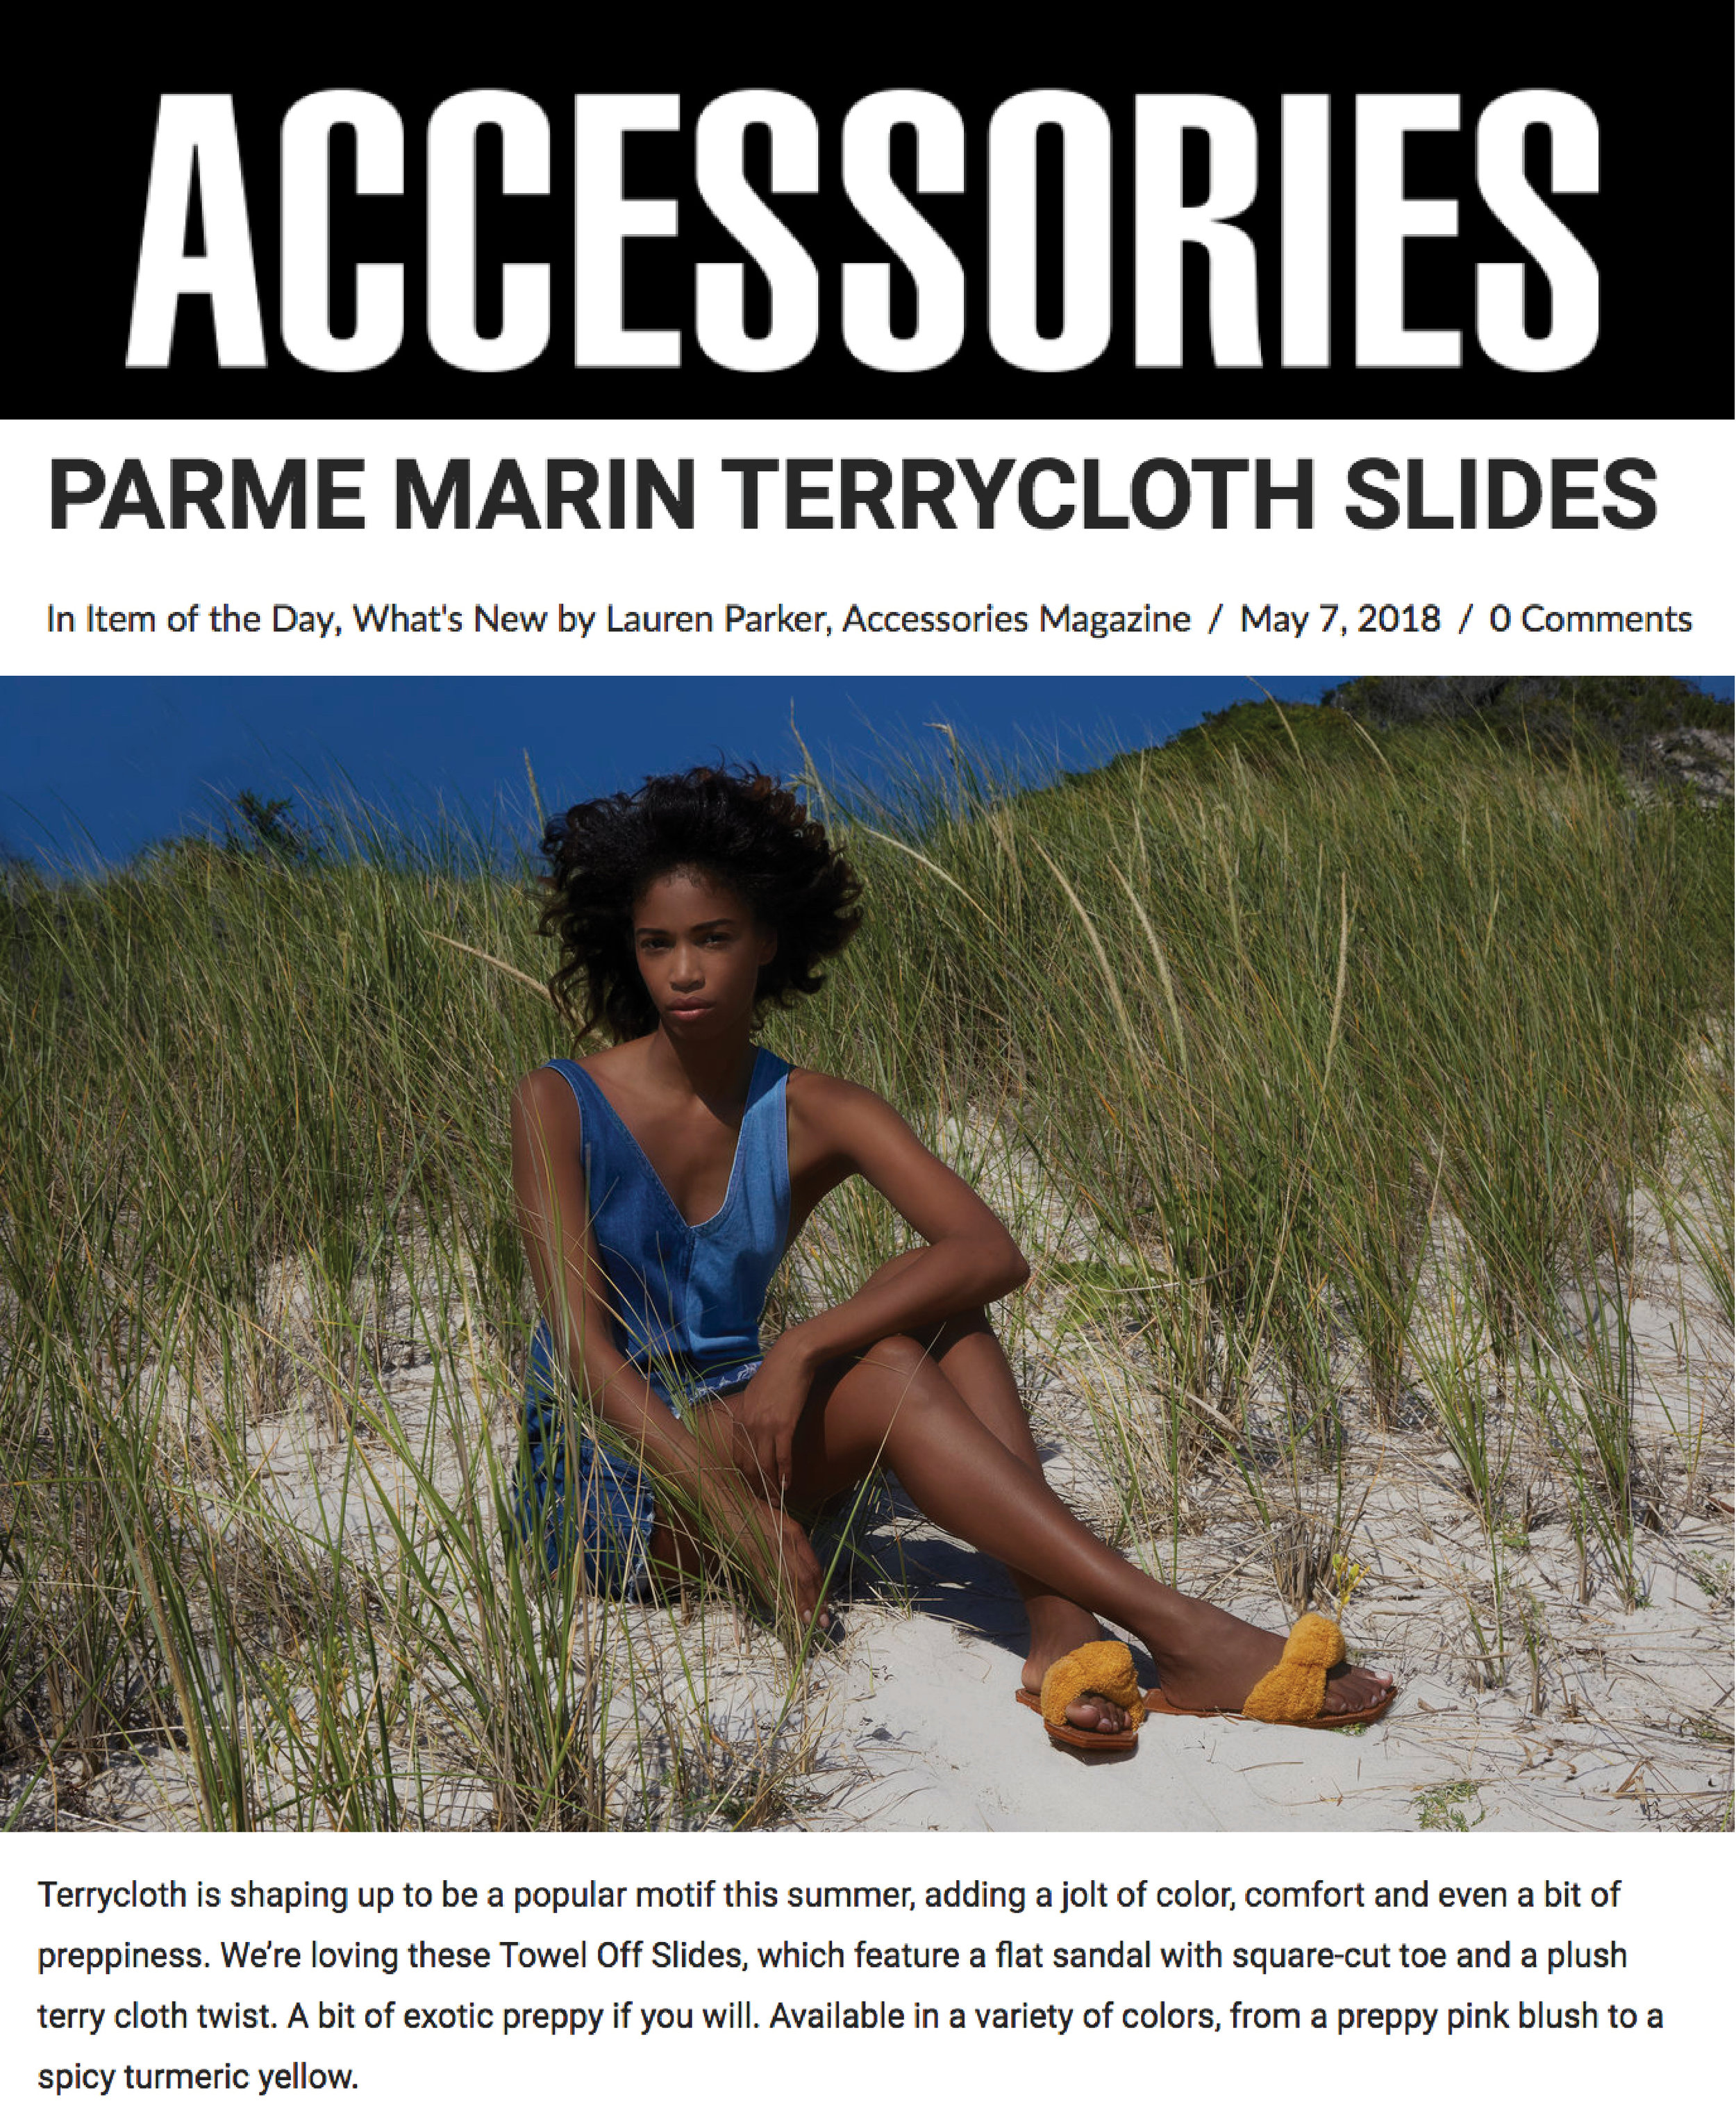 ACCESSORIES MAG MAY 2018